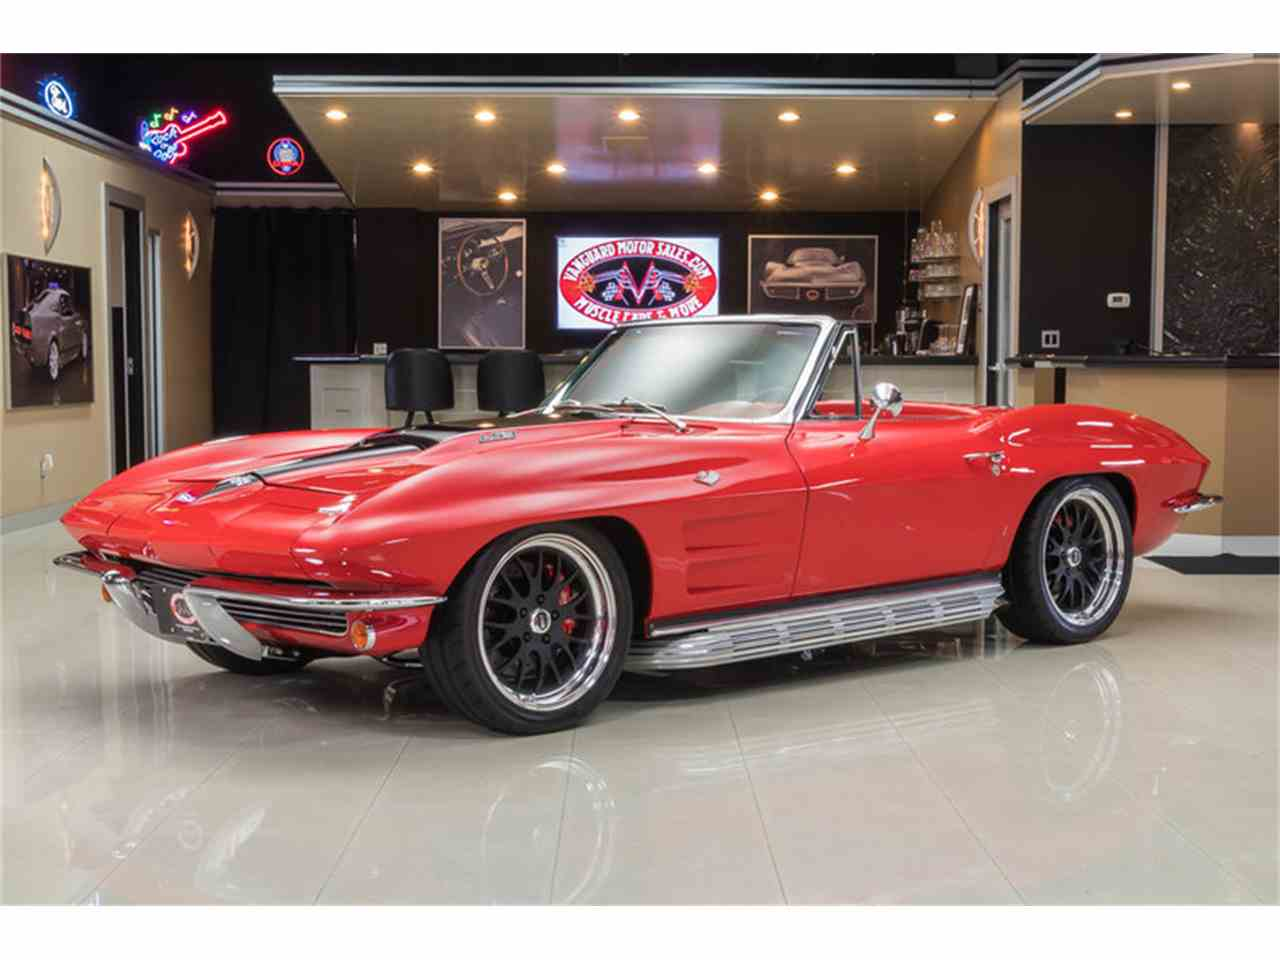 Corvette 1964 chevrolet corvette : 1964 Chevrolet Corvette Convertible Pro Touring for Sale ...